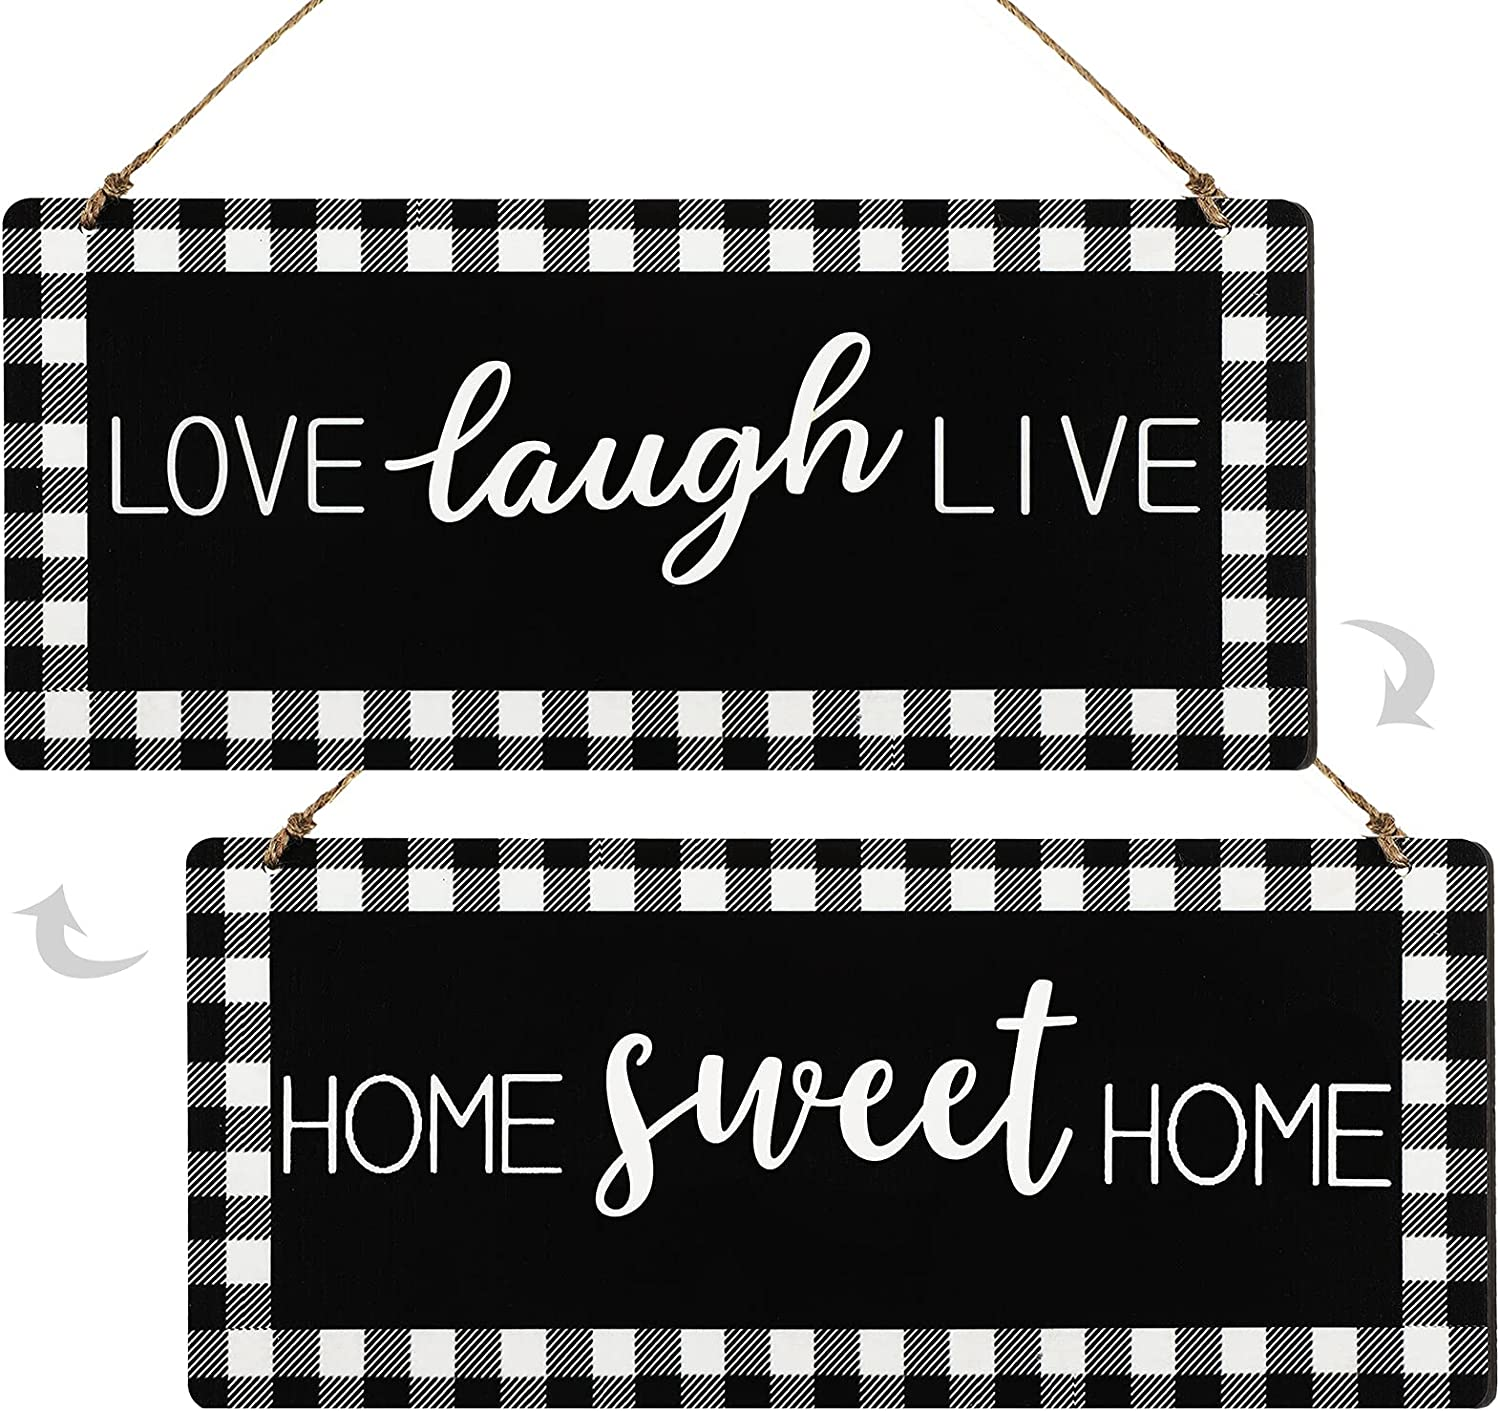 Wooden Home Sweet Home Sign Love Laugh Live Sign Rustic Buffalo Plaid Home Sign Black White Vintage Wall Decor for Home Kitchen Farmhouse